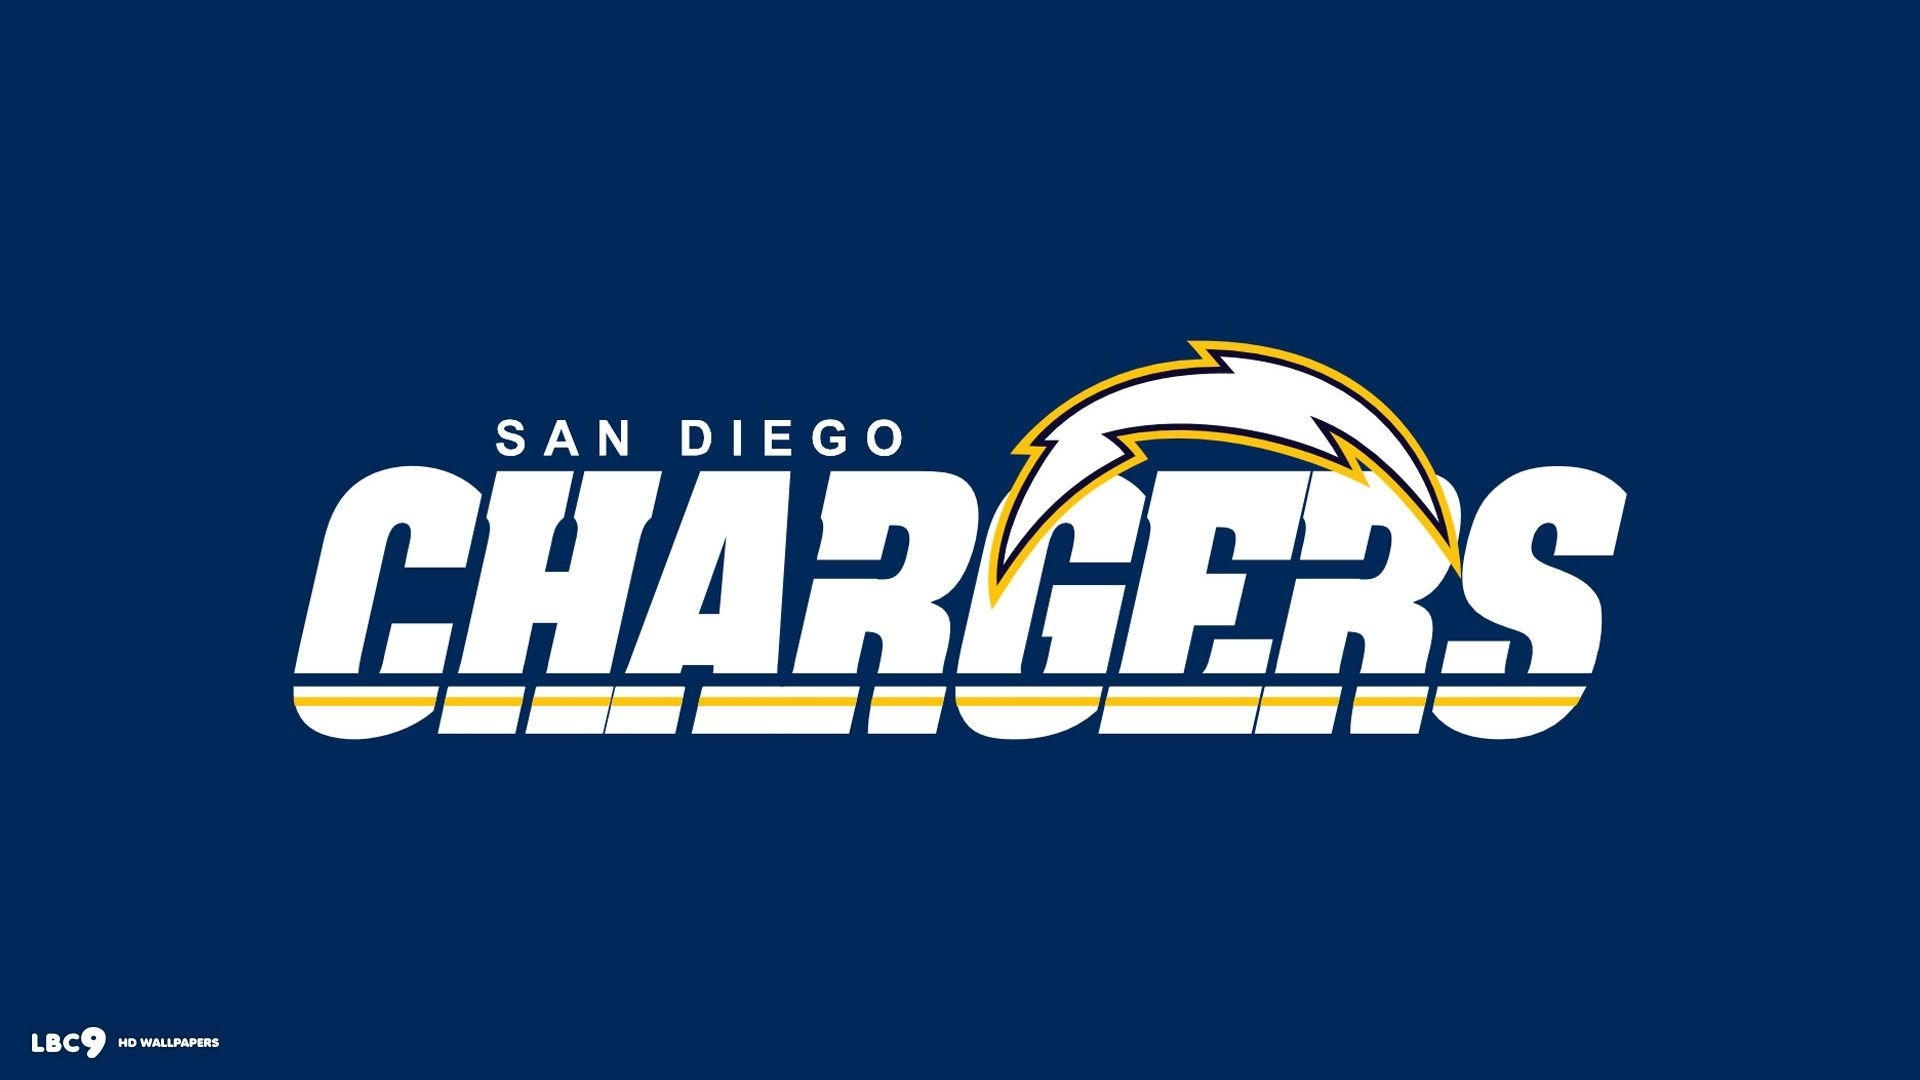 san diego chargers wallpapers hd download | pixelstalk